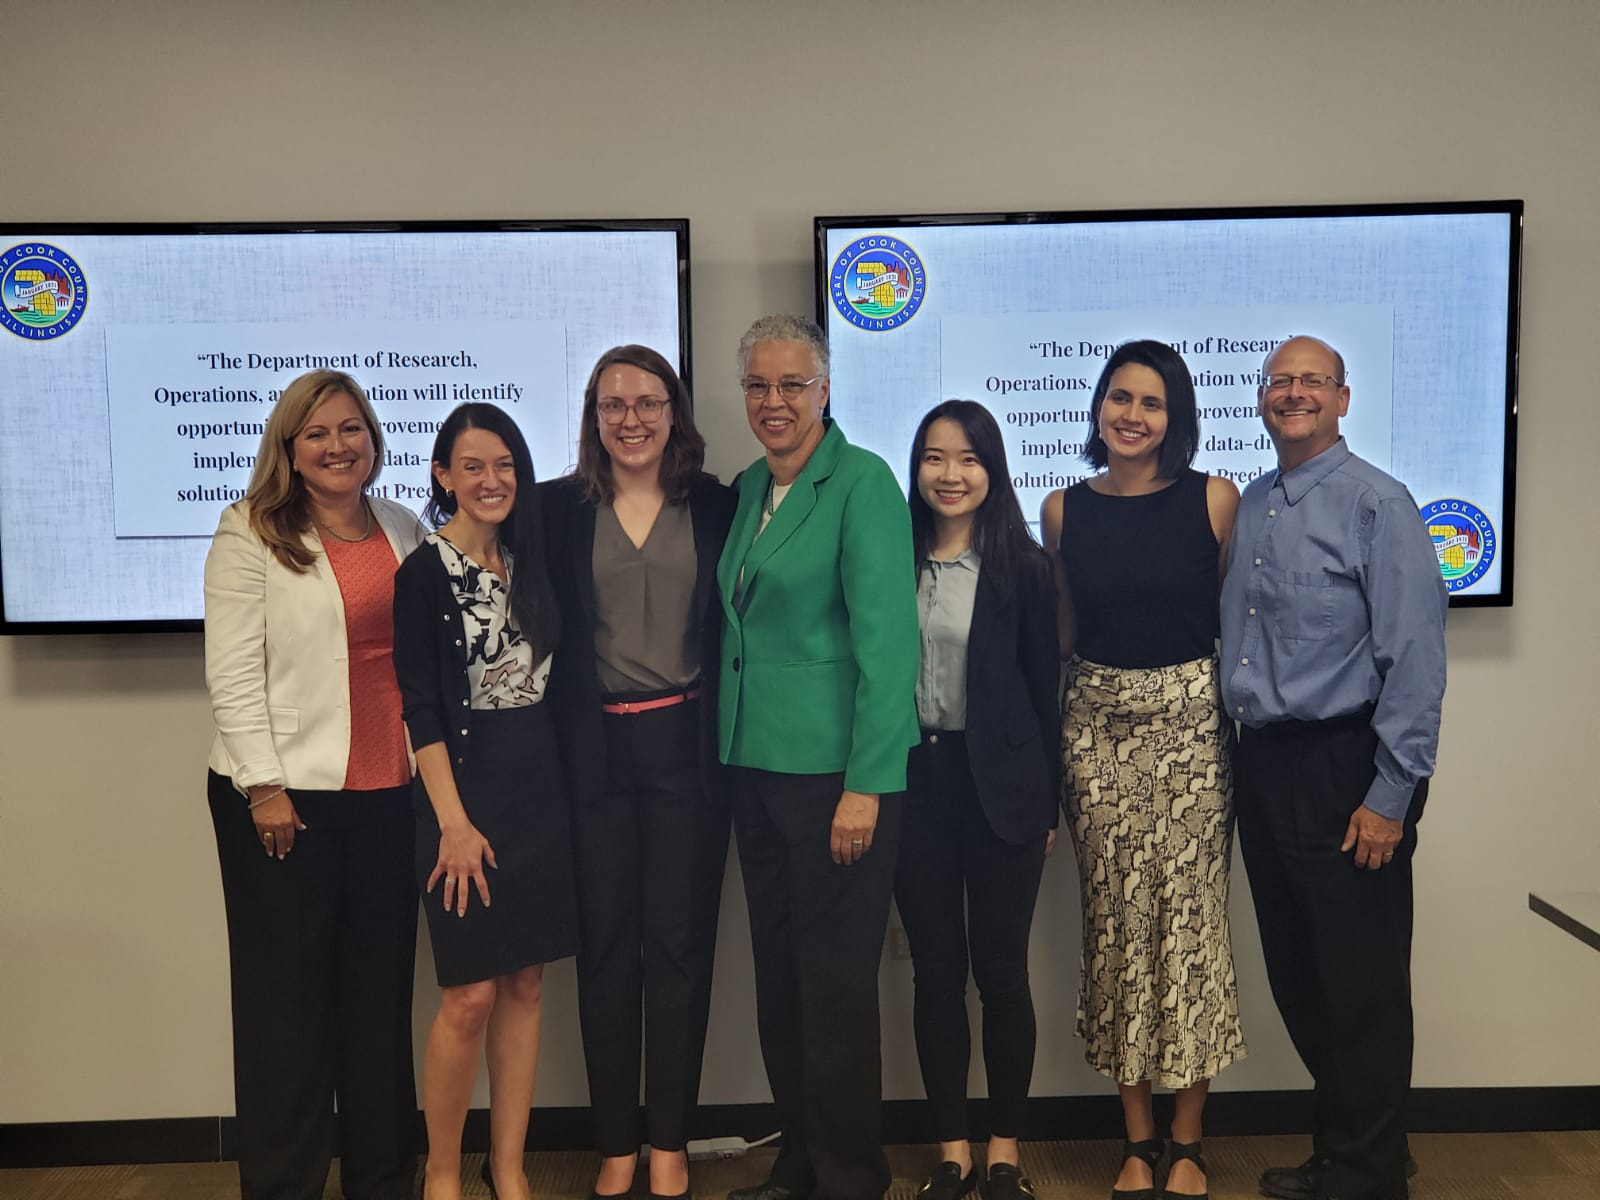 Applied Data Fellows present their project outcomes to Cook County President Toni Preckwinkle